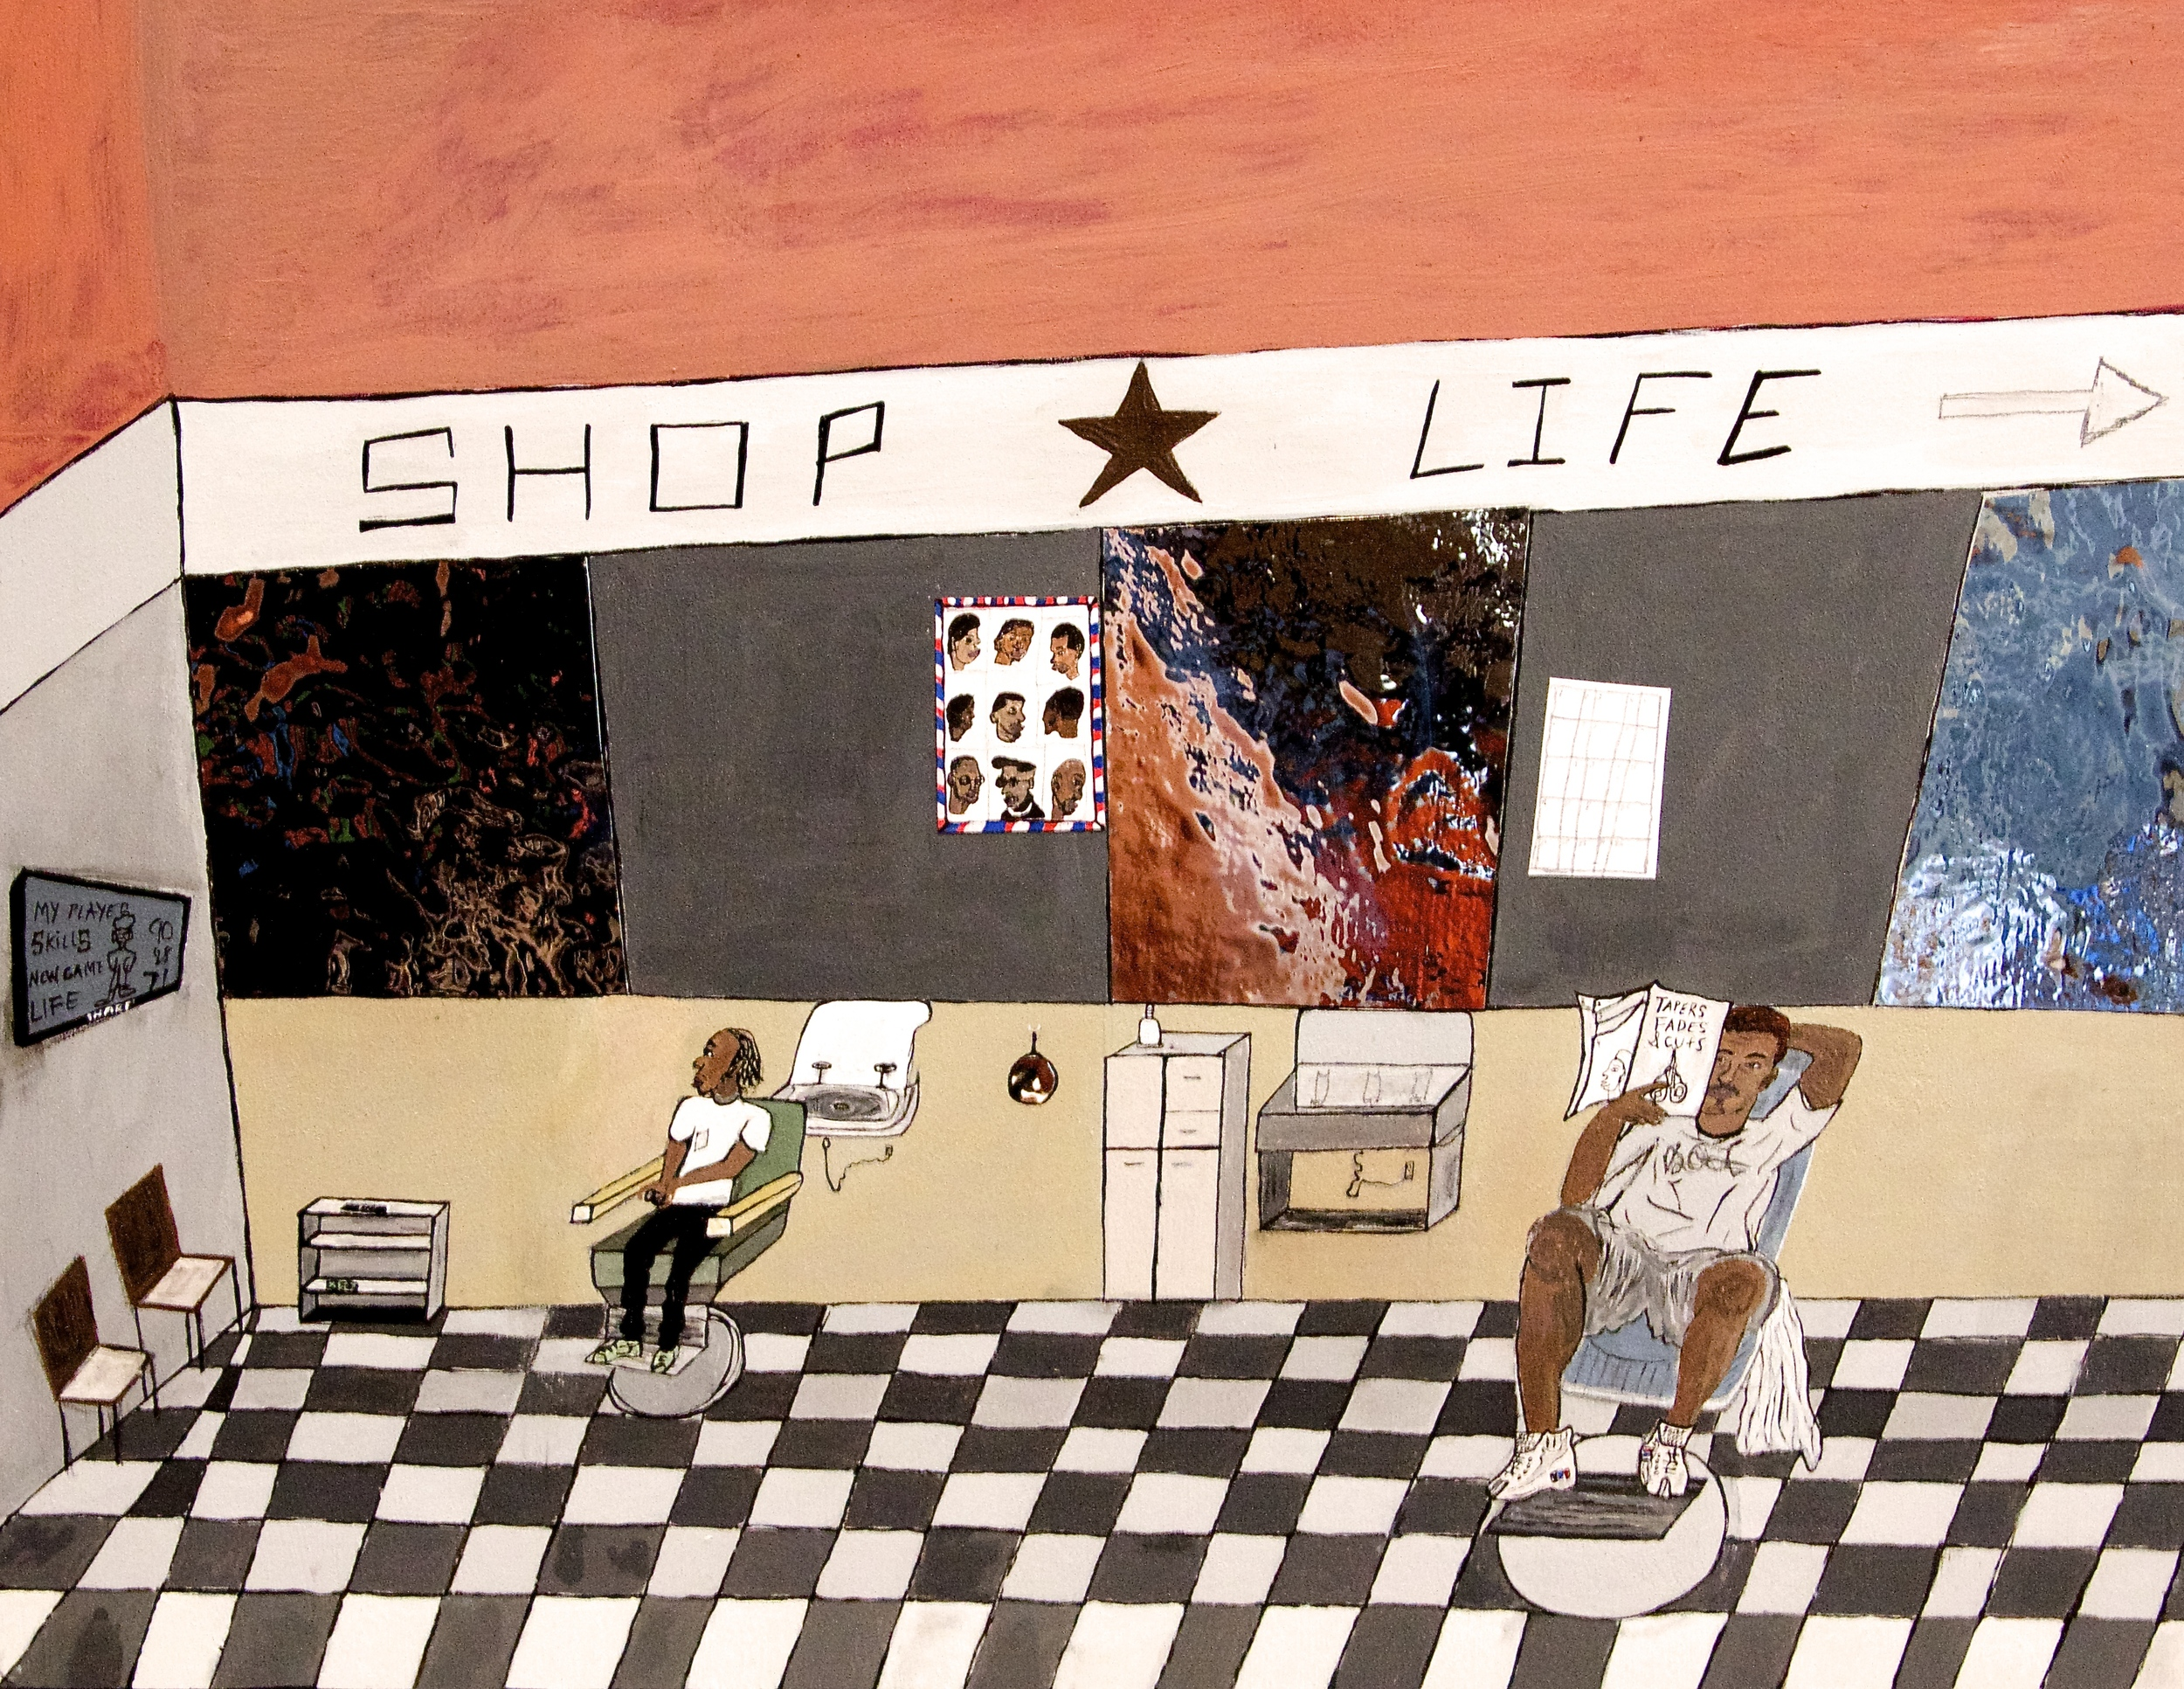 SHOP LIFE (sold) 12 x 16 acrylic and mixed media 2015